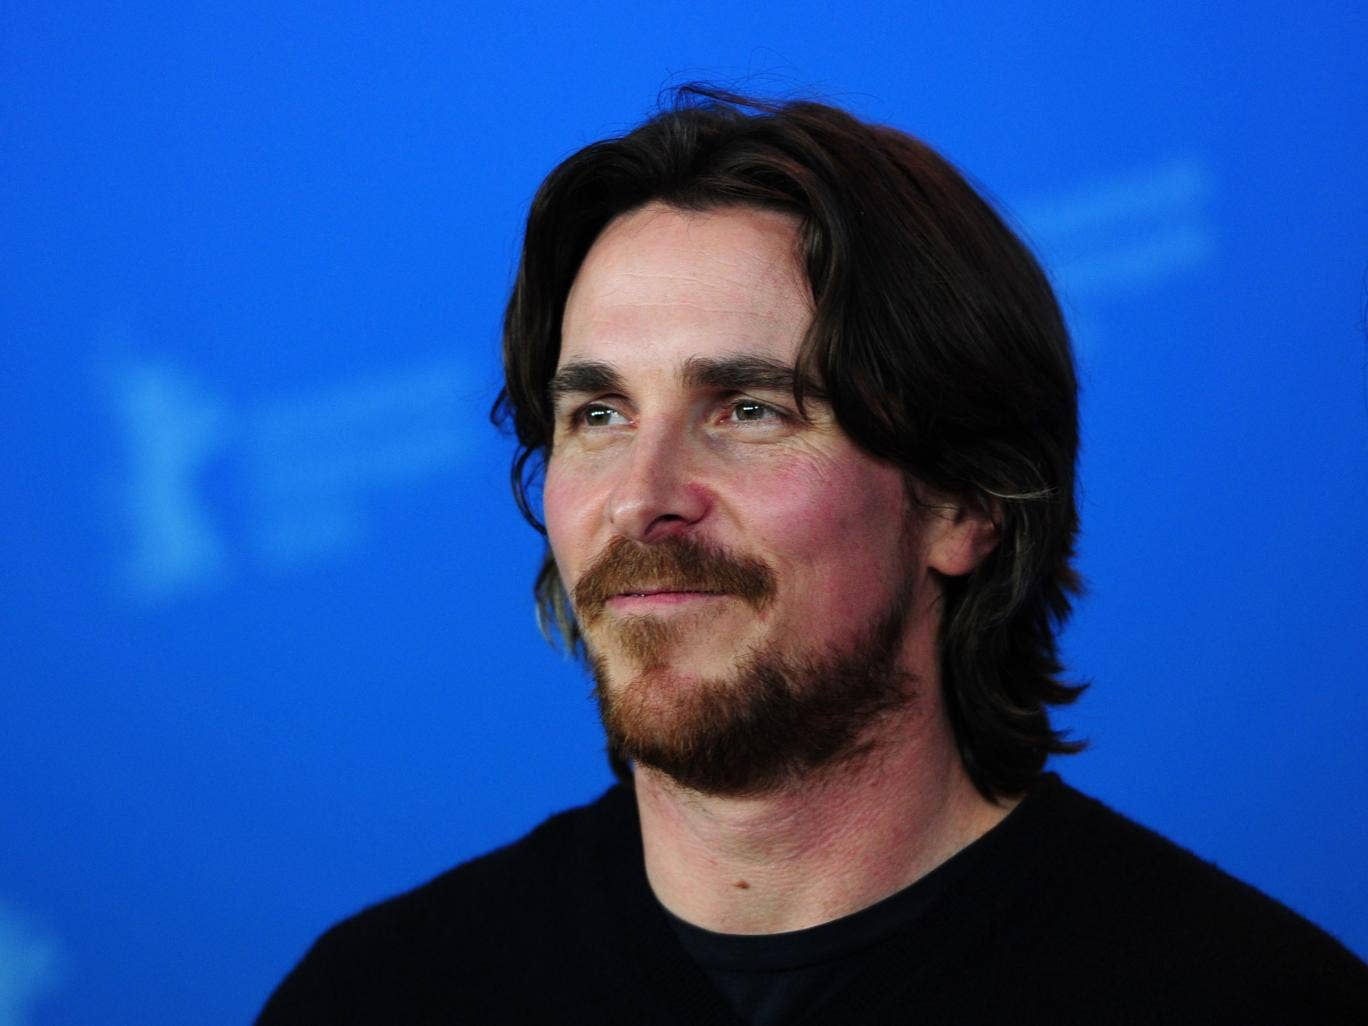 Christian Bale bears a striking resemblance to the late Apple creator